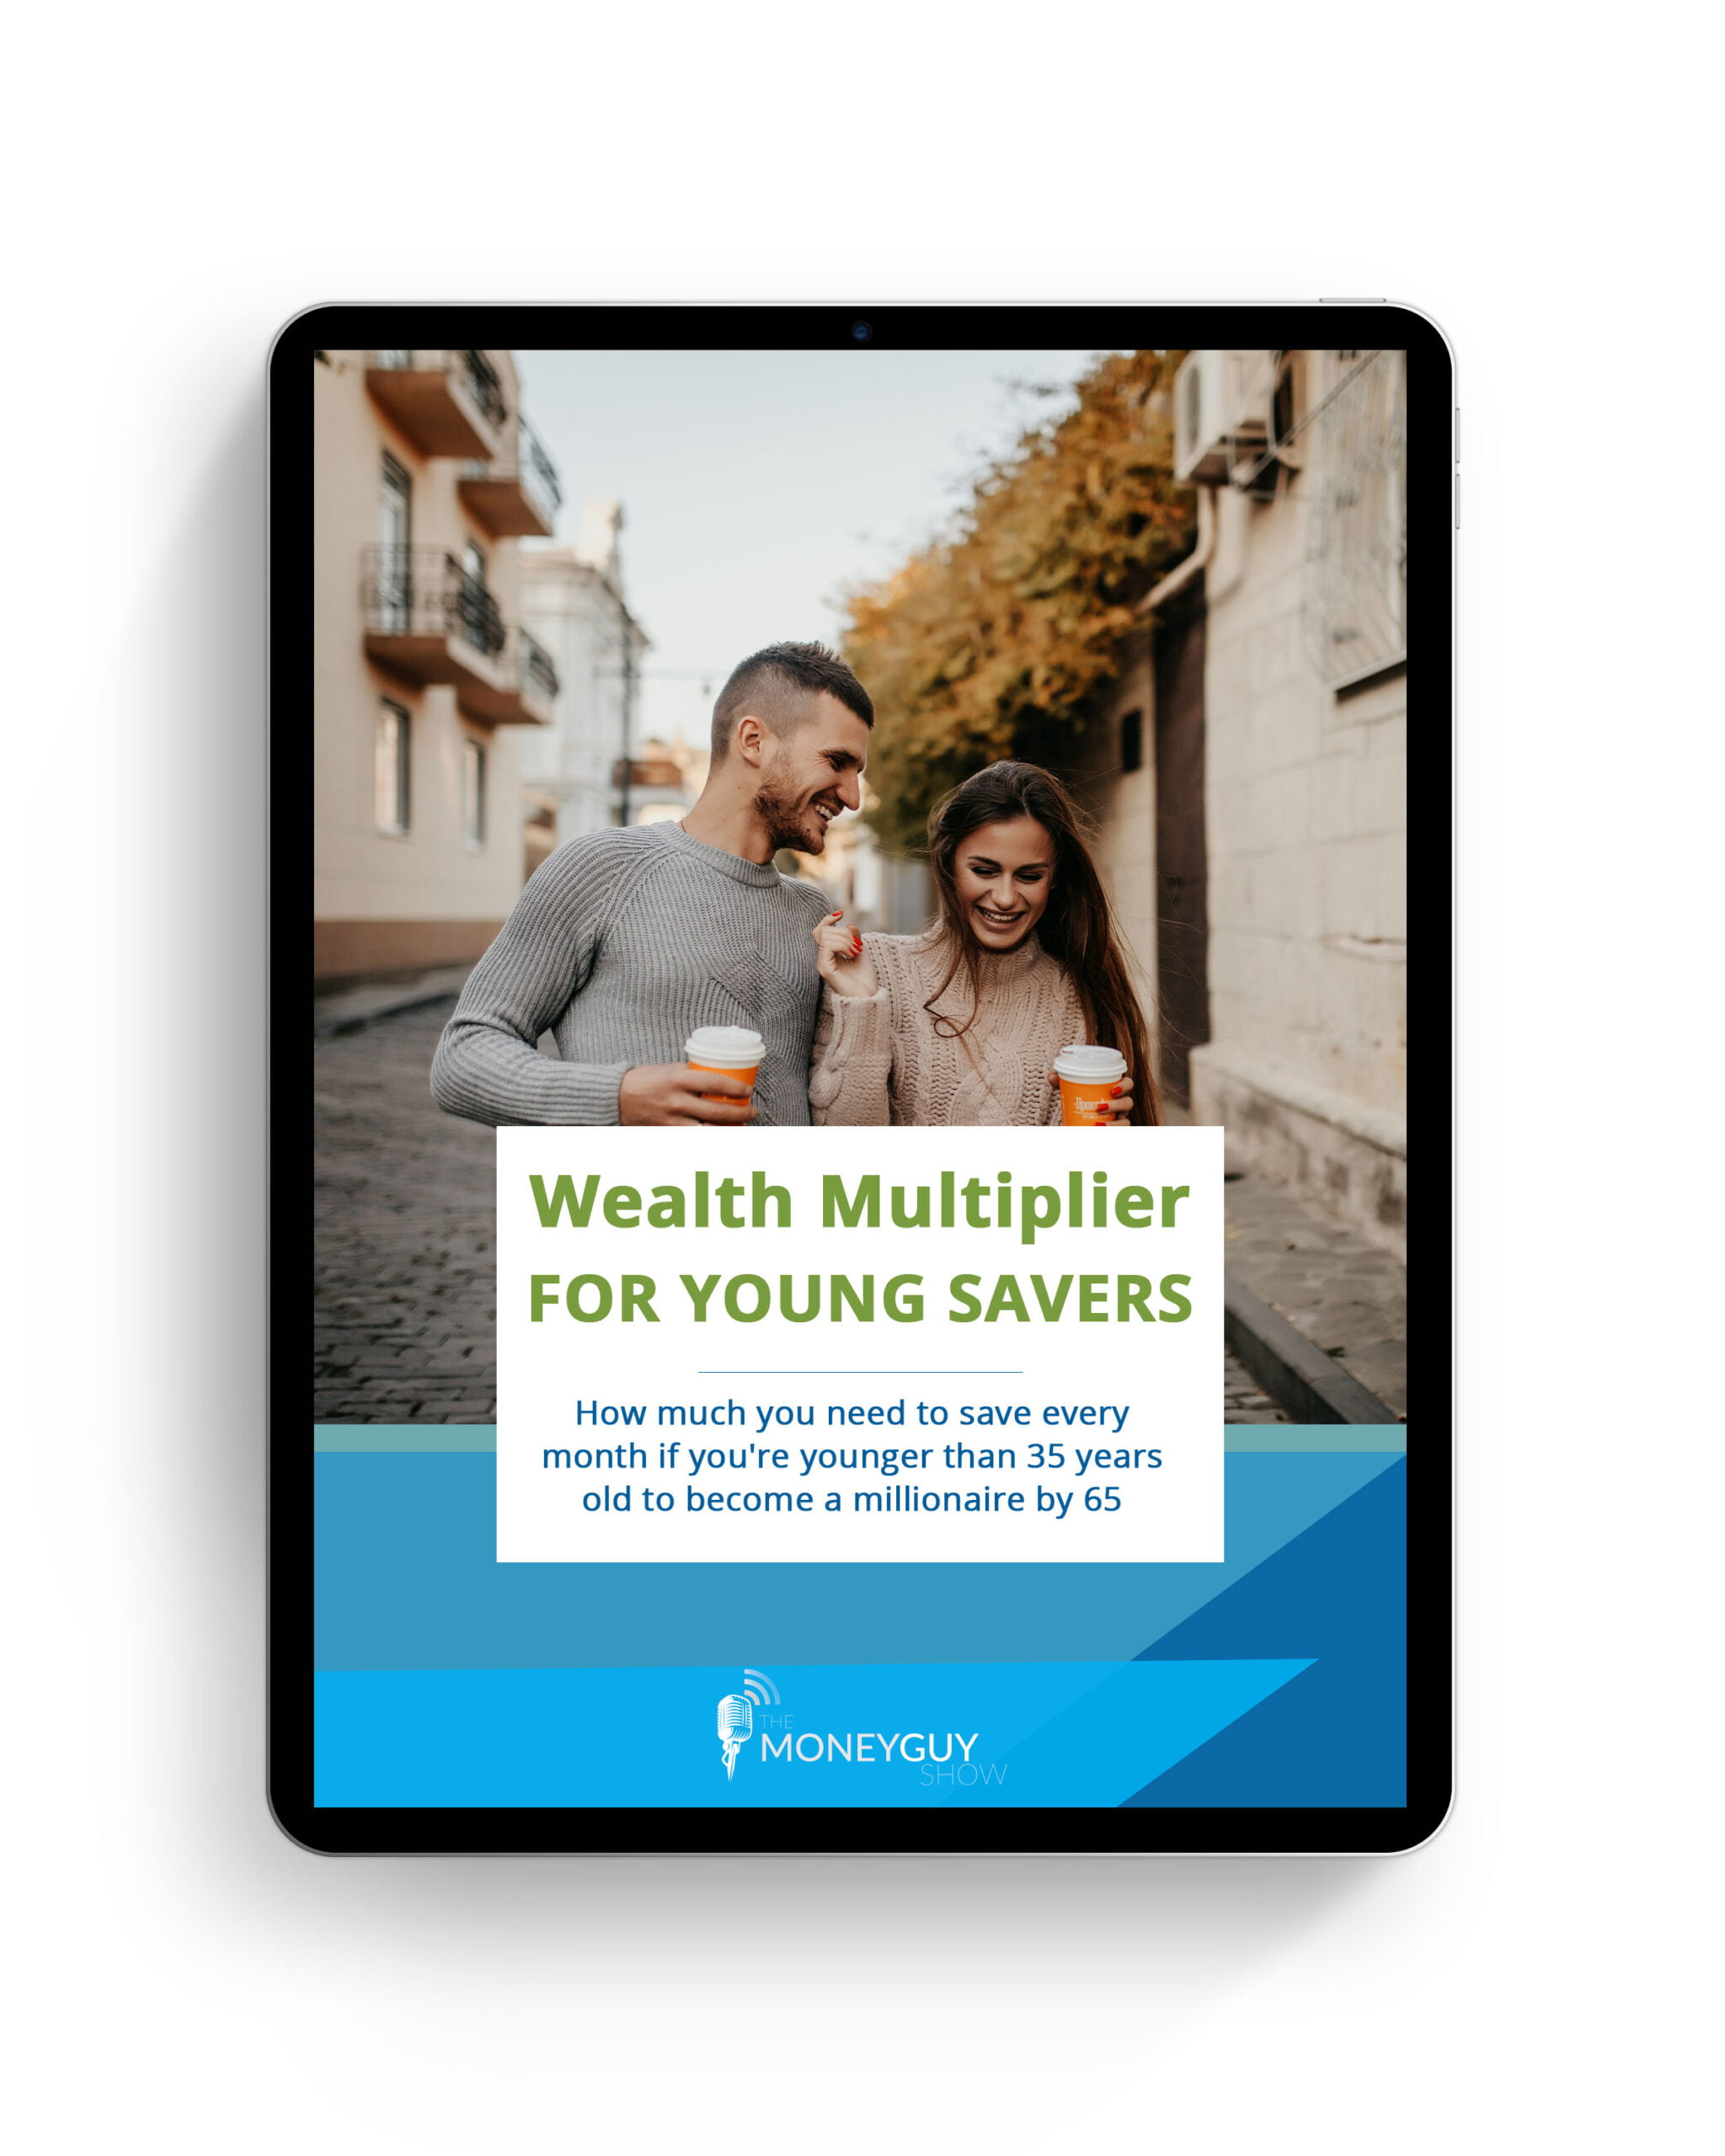 2021-01-18-Wealth-Multiplier-for-Young-Savers